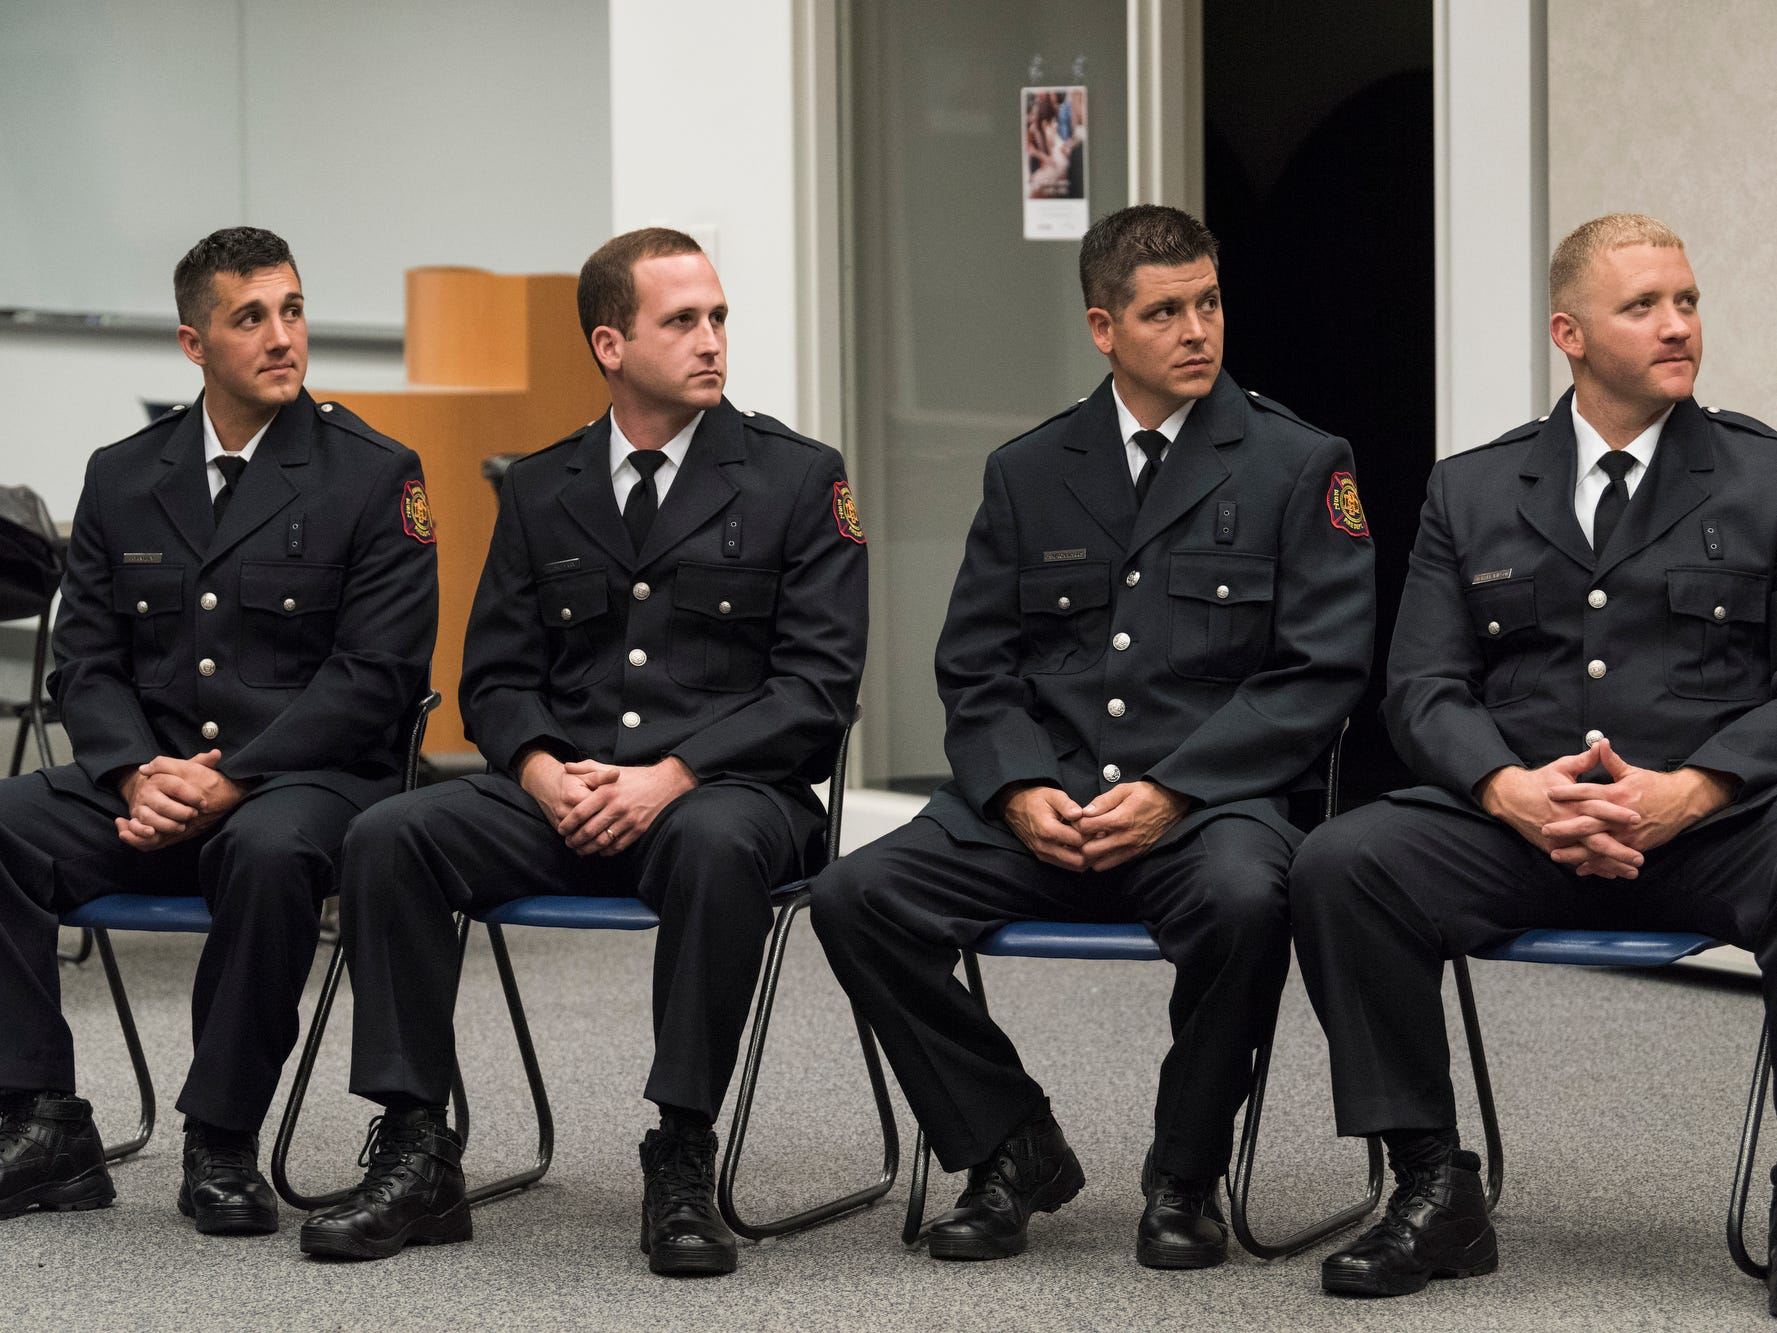 A graduation ceremony is held for new probationary Evansville Firefighters Ryan Lux, from left, Jesse Marx, Cameron Harris and Michael Wilson at the American Red Cross Headquarters in Evansville, Ind., Friday, Oct. 12, 2018.